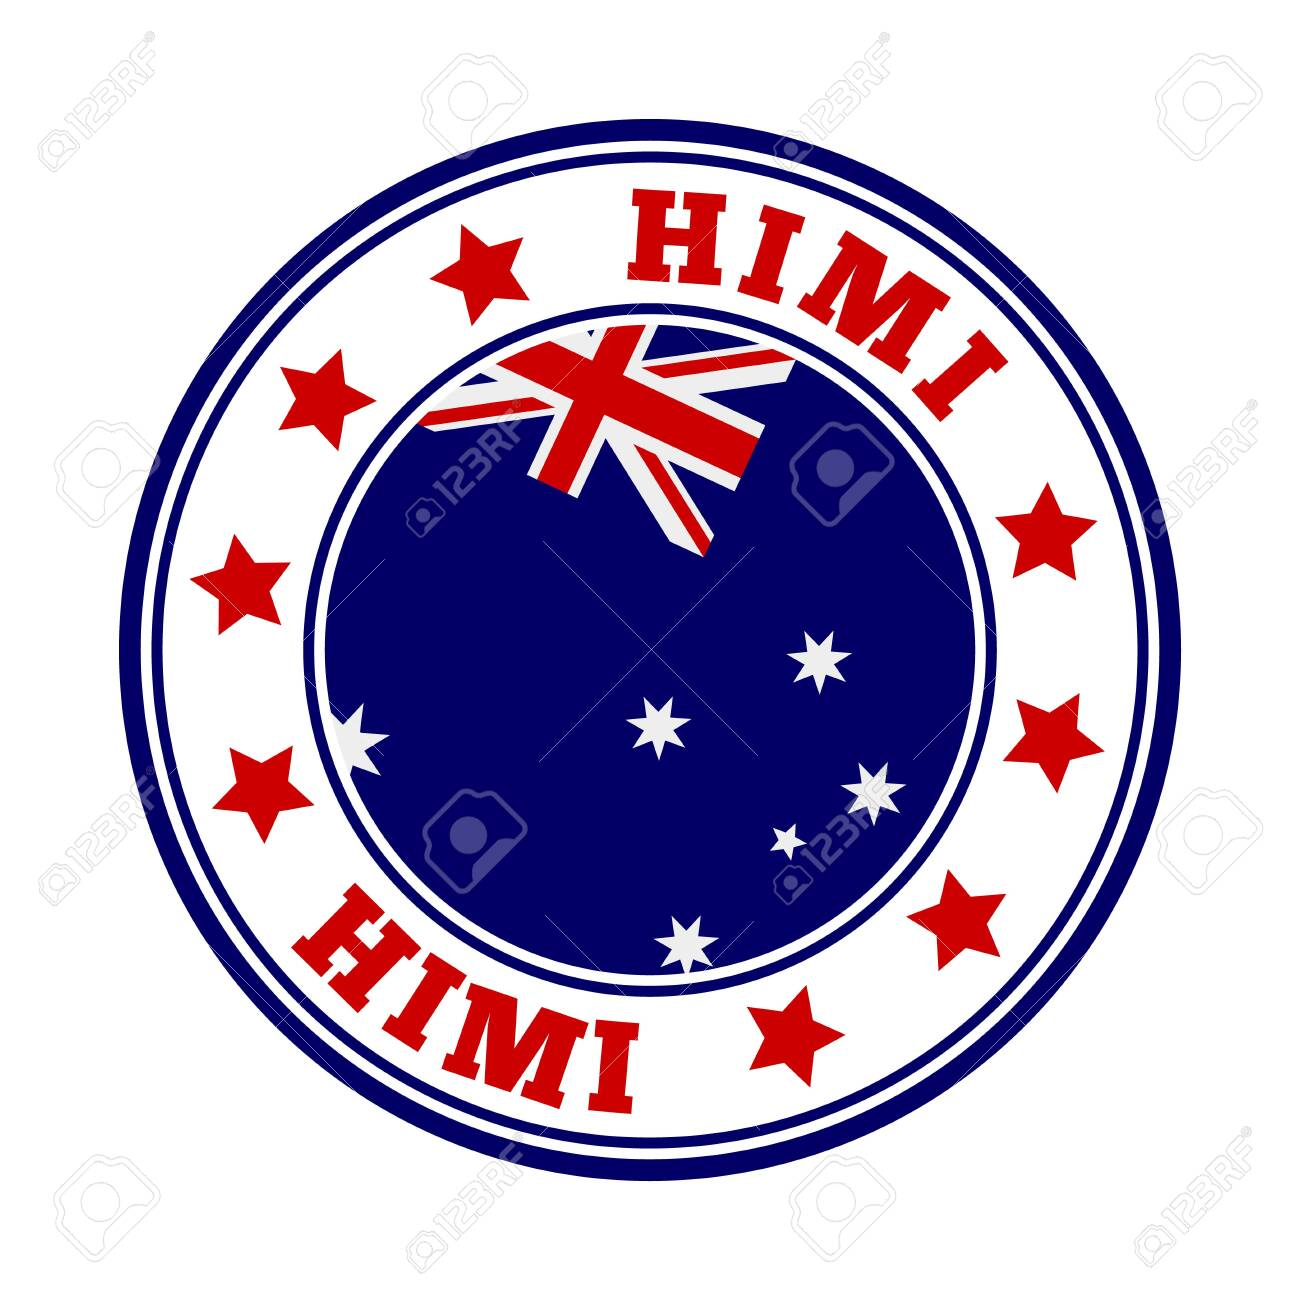 HIMI sign. Round country logo with flag of HIMI. Vector illustration. - 138370688